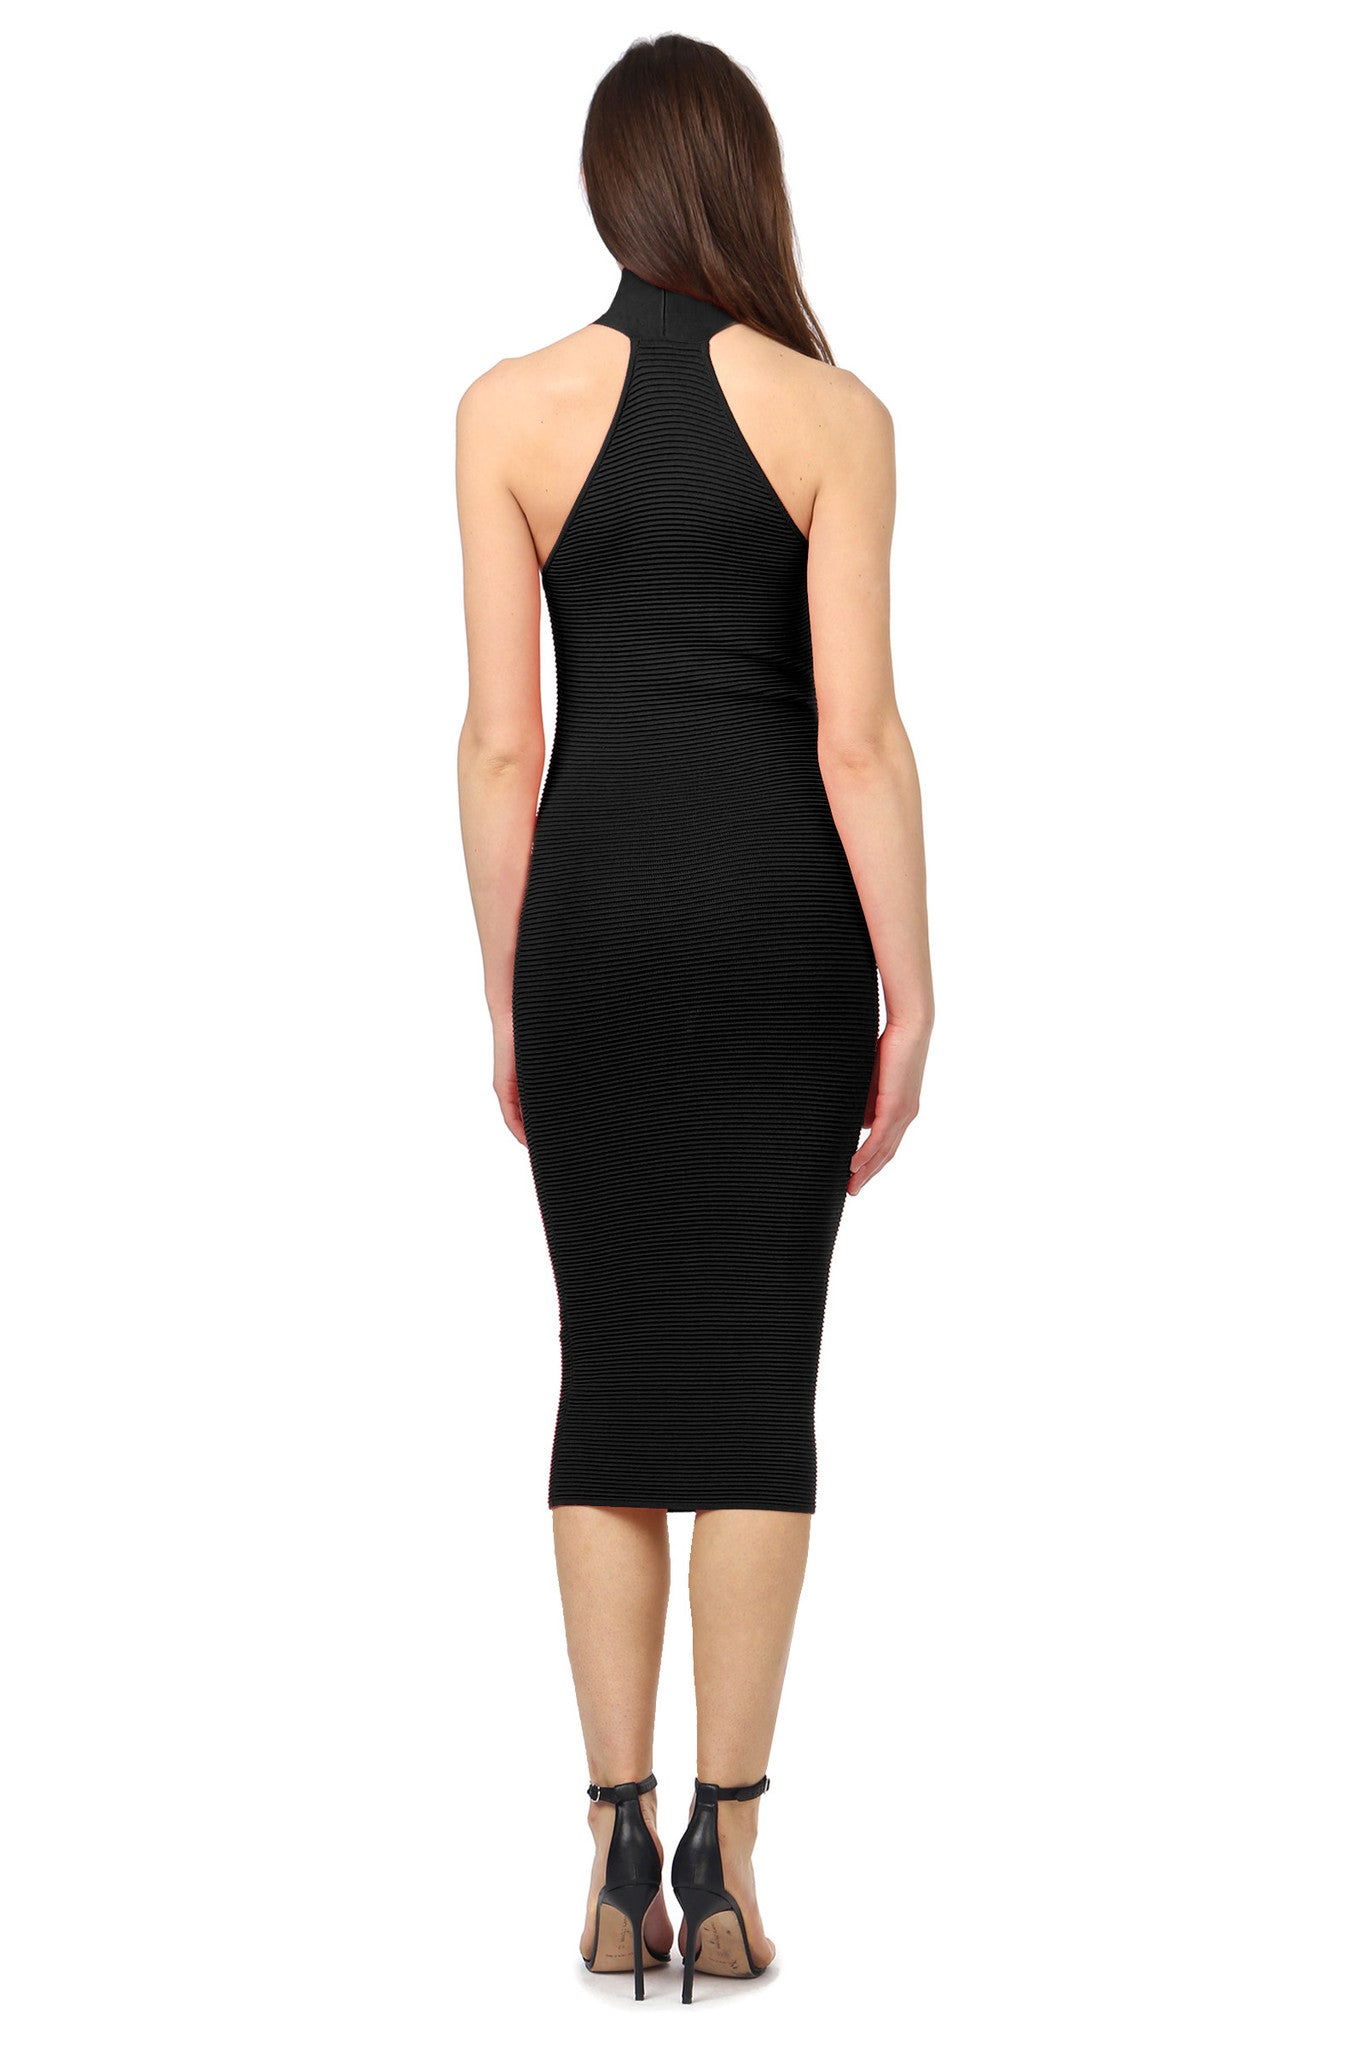 Jay Godfrey Black Body-Con Dress - Back View